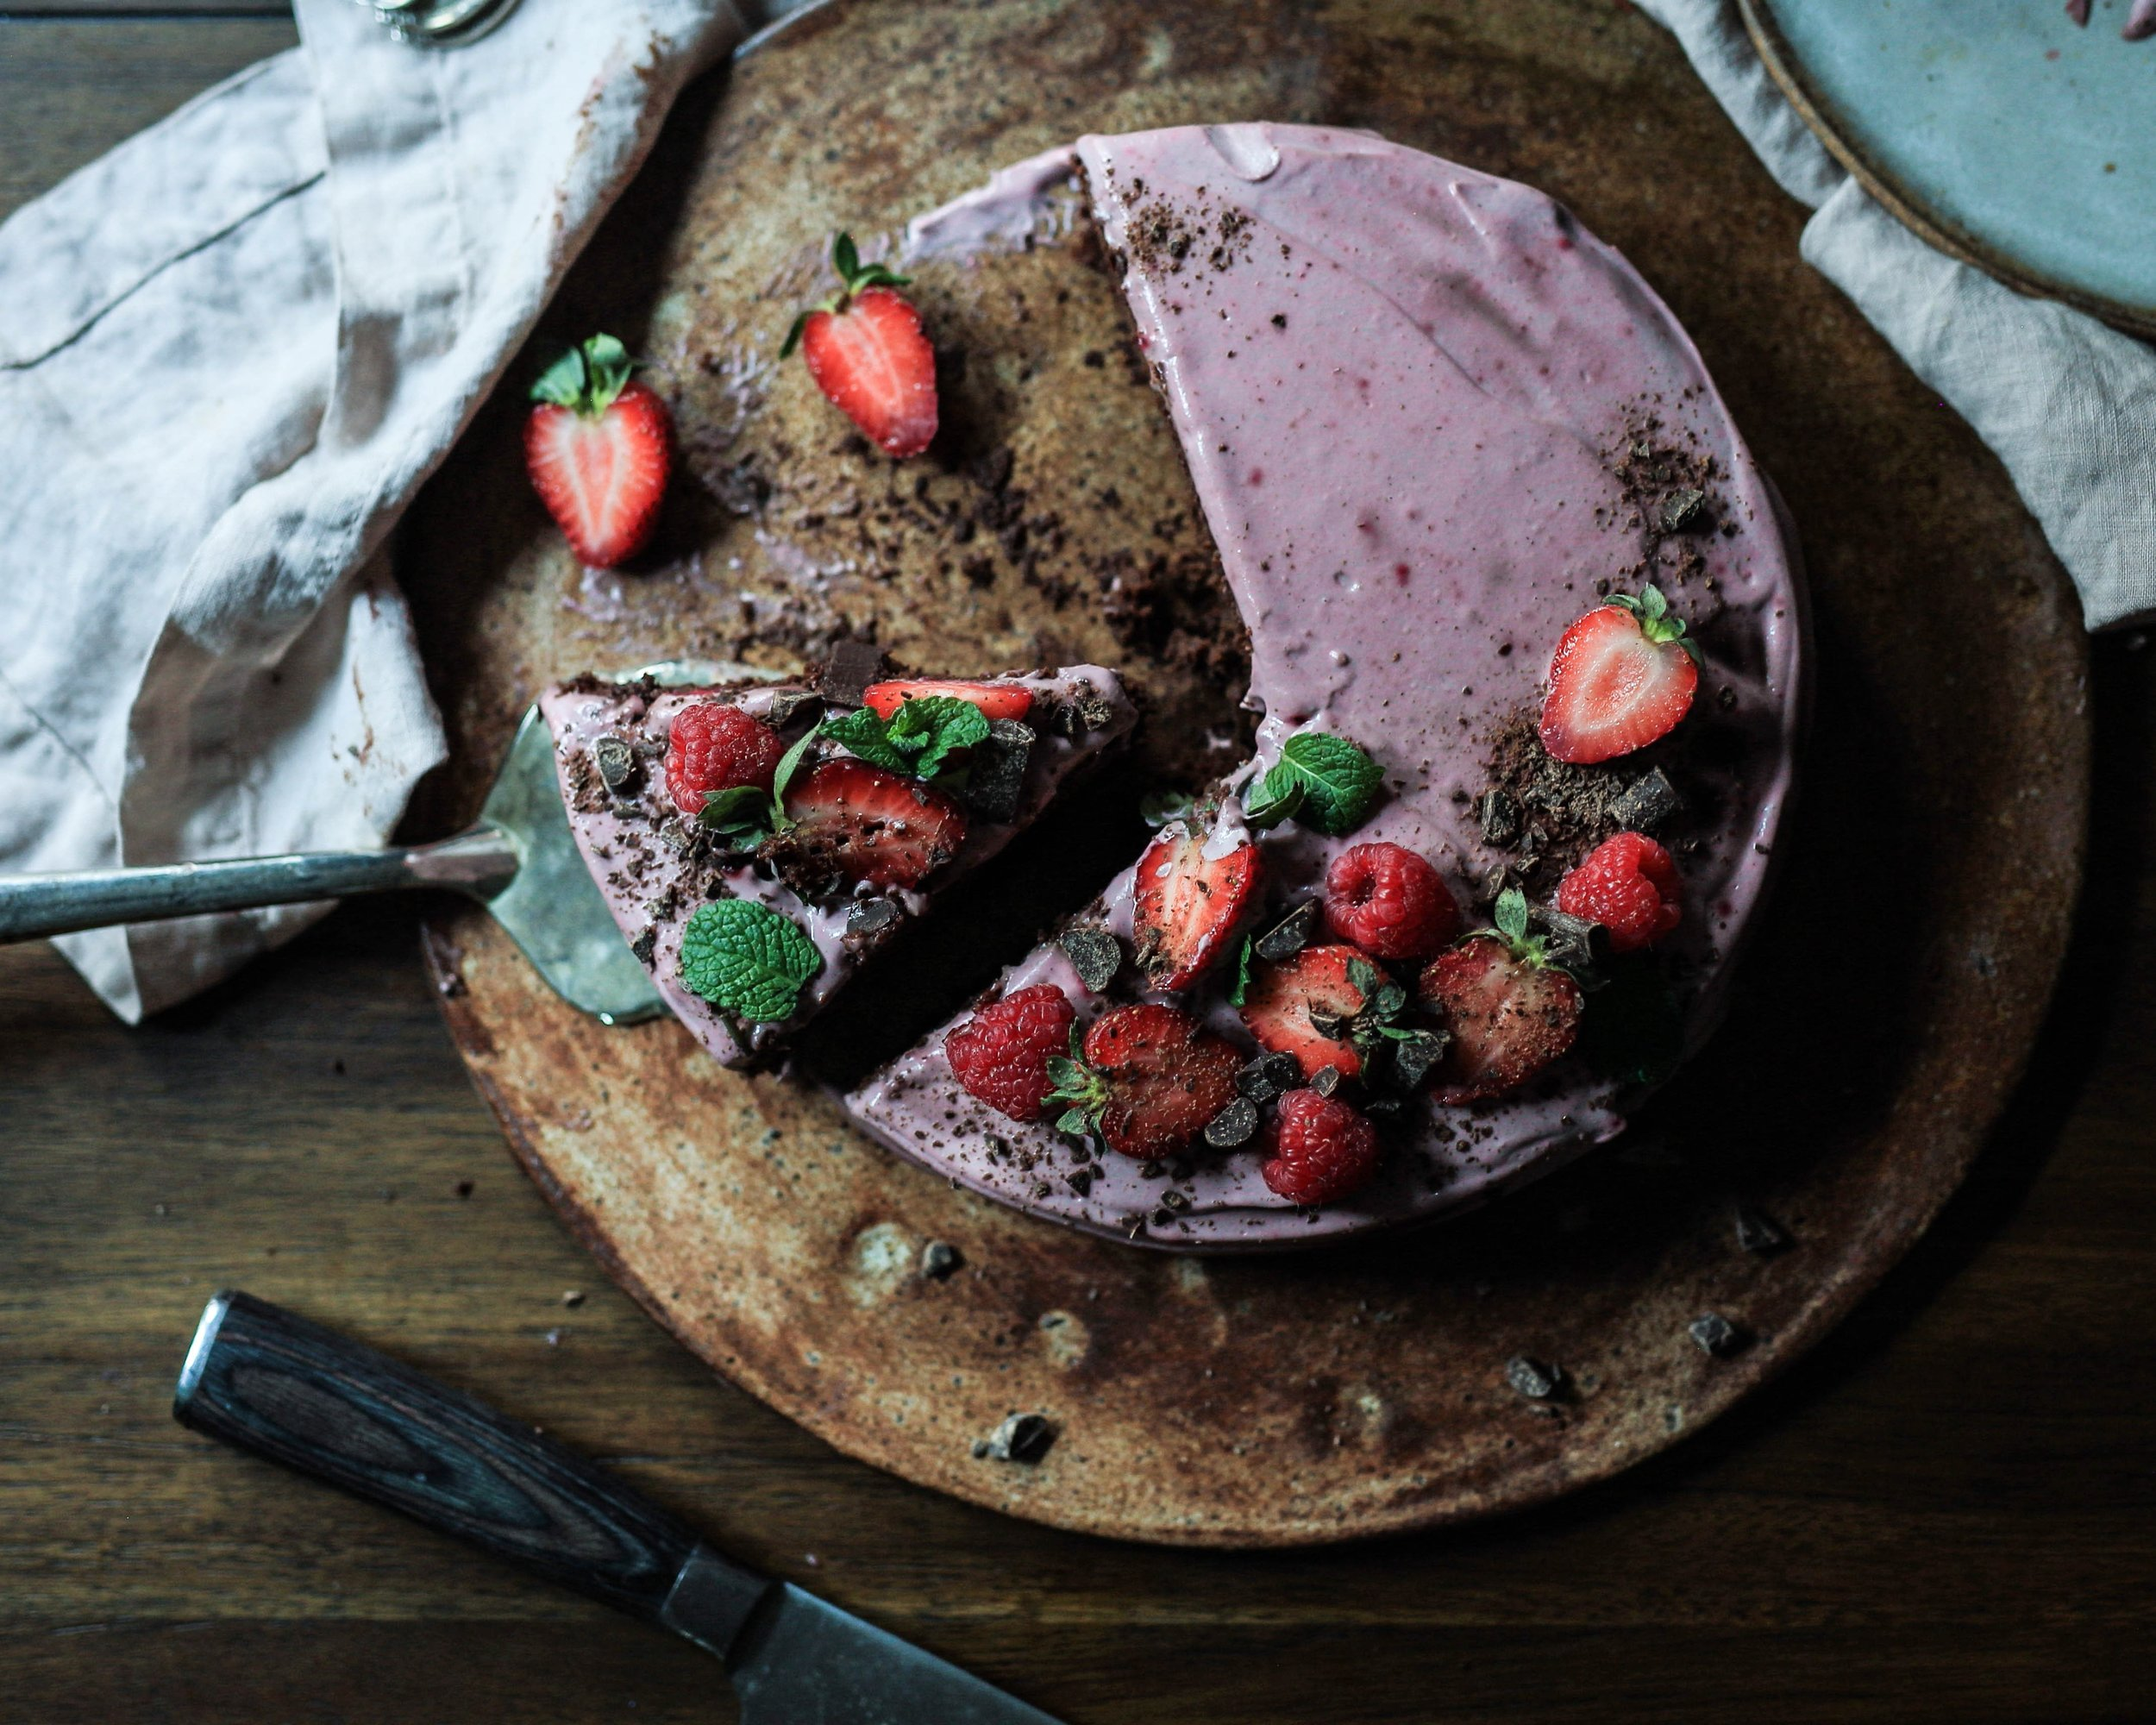 Homemade cake with purple frosting and fresh strawberries.